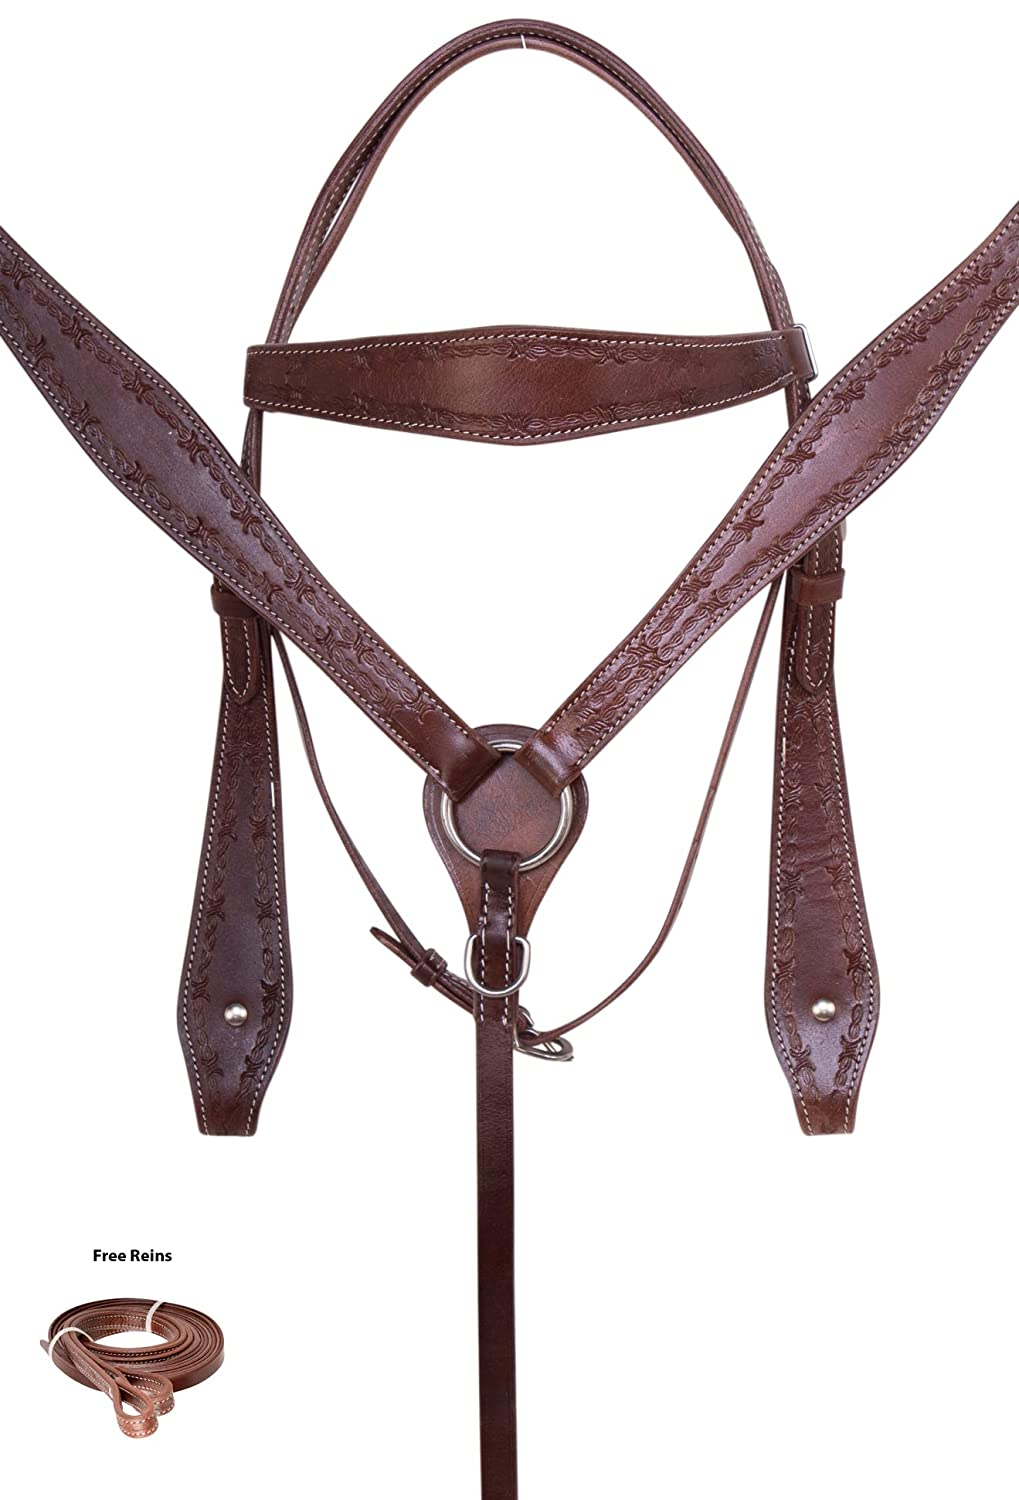 AceRugs Ranch Roping Western Leather Horse TACK Set Package Brown Tooled Headstall Bridle REINS Breastplate